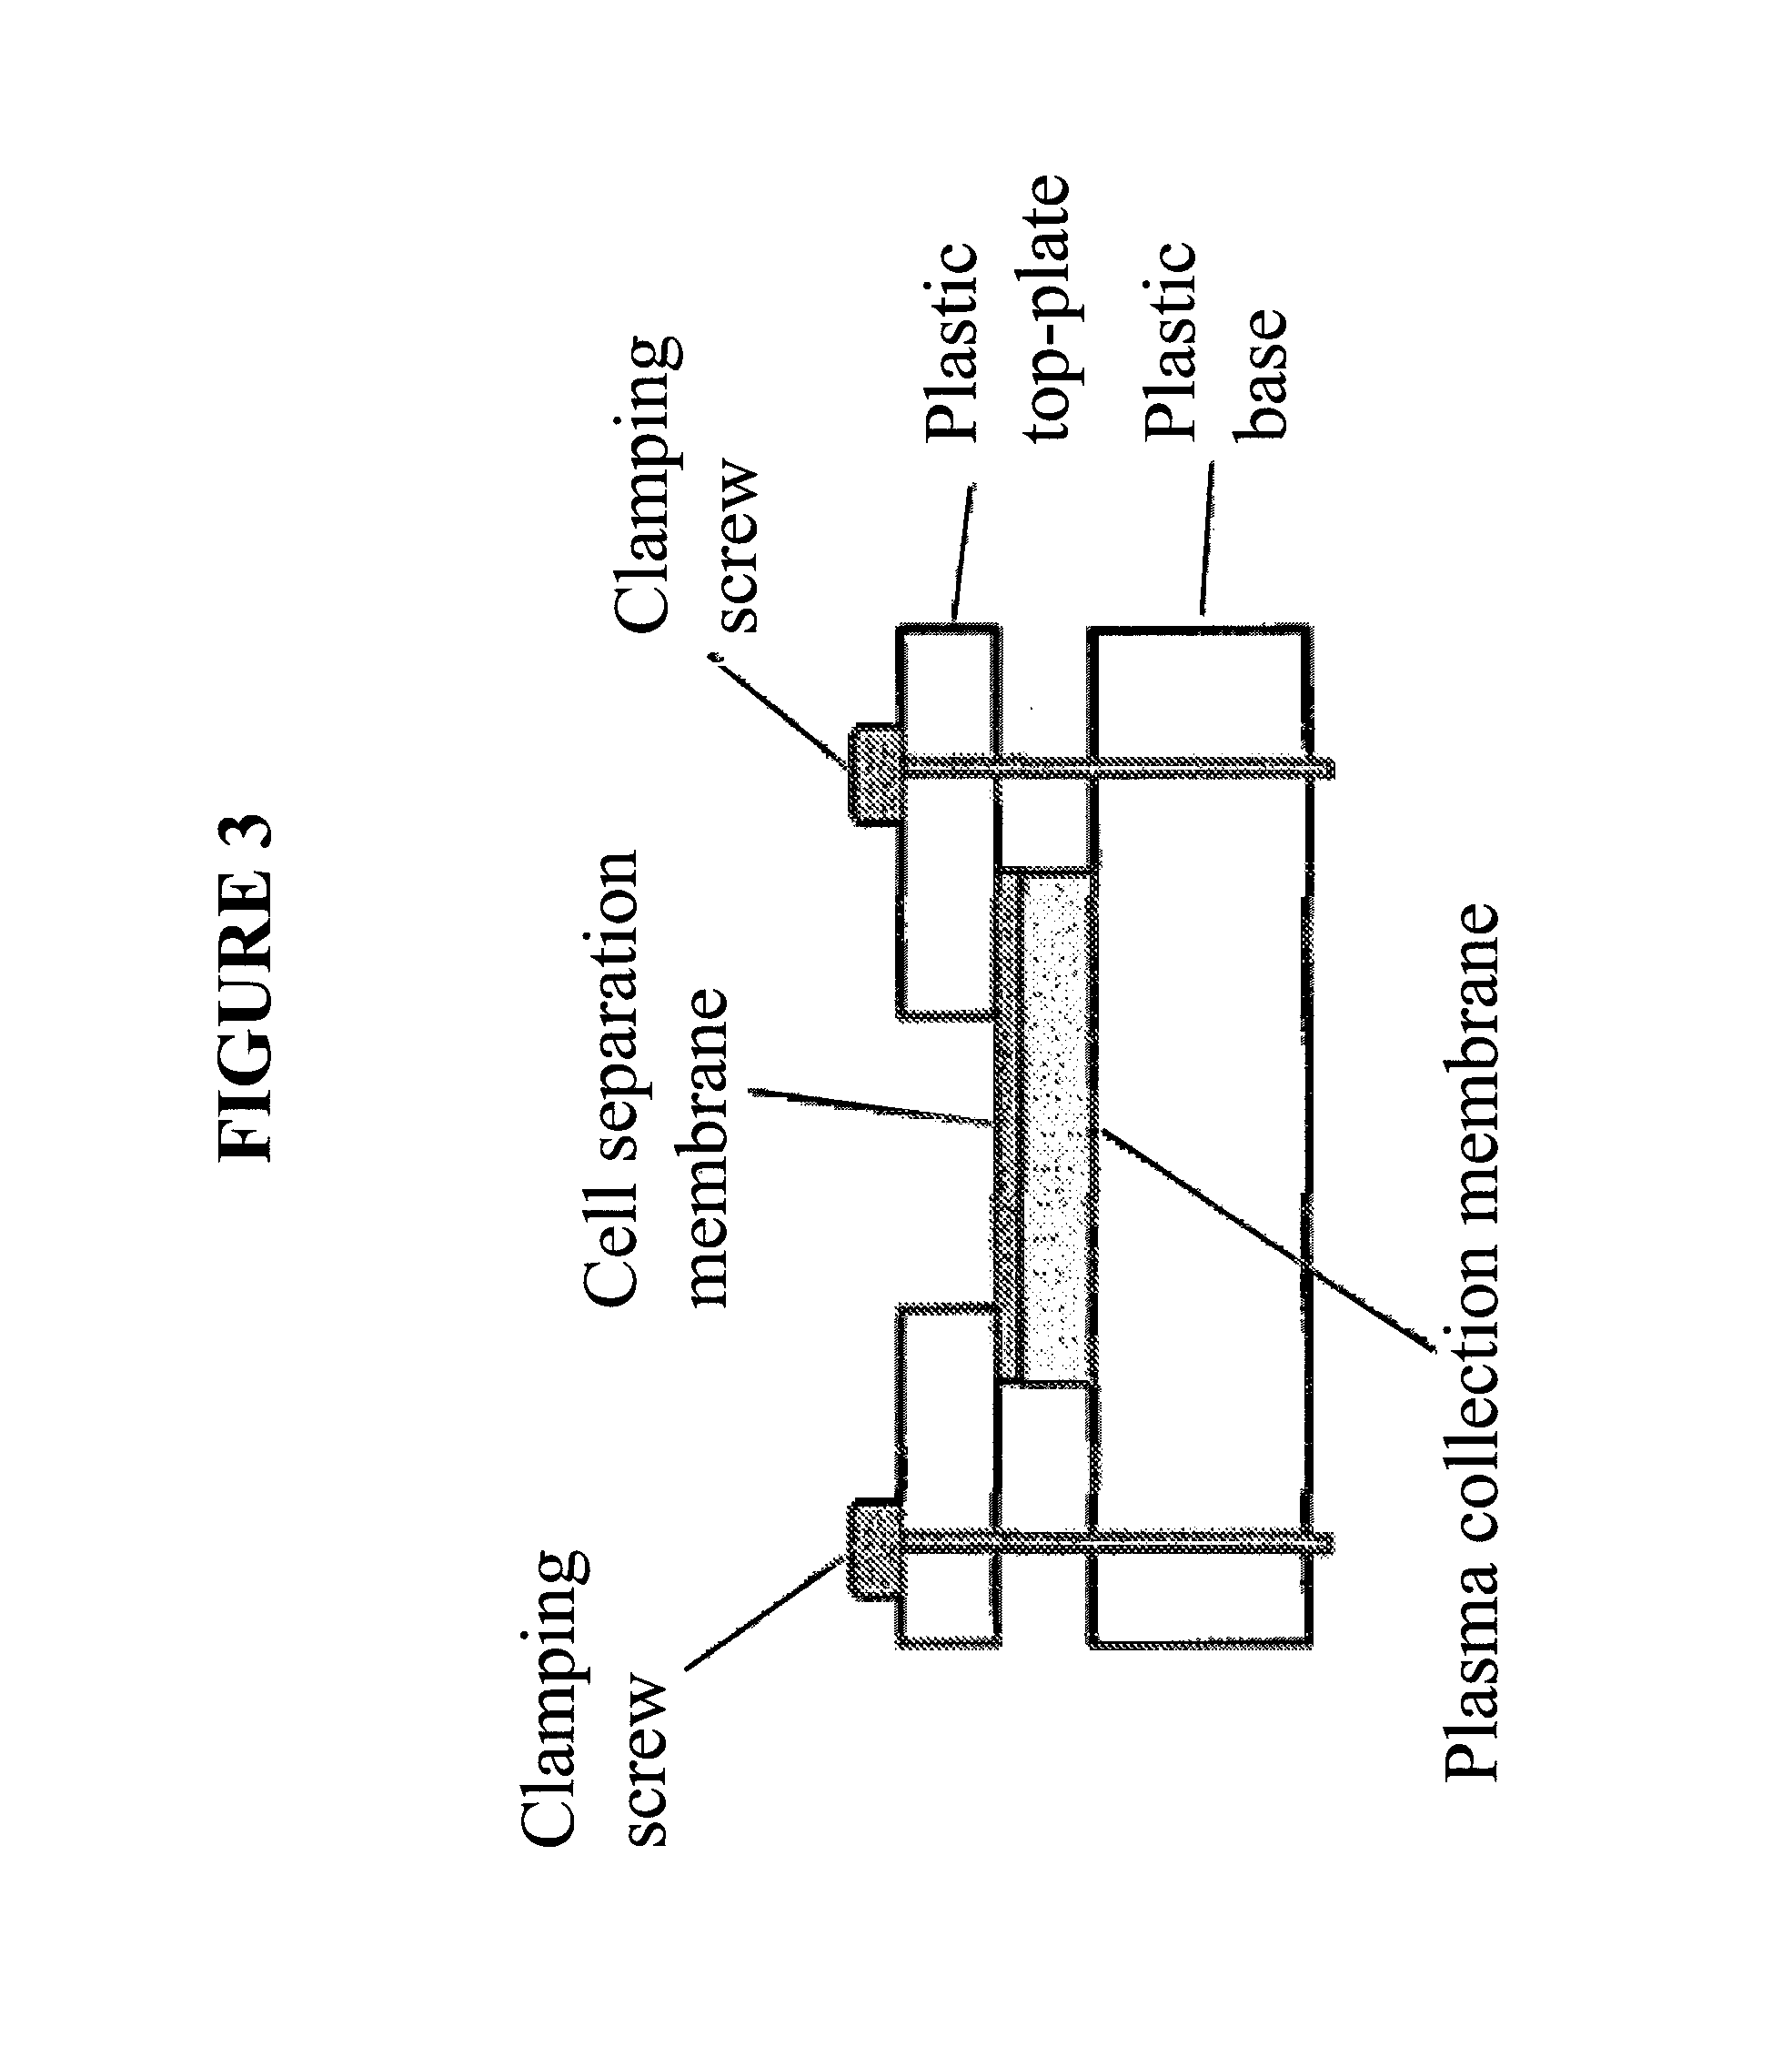 Us20120024788a1 devices and methods for filtering blood plasma us20120024788a1 devices and methods for filtering blood plasma google patents pooptronica Choice Image